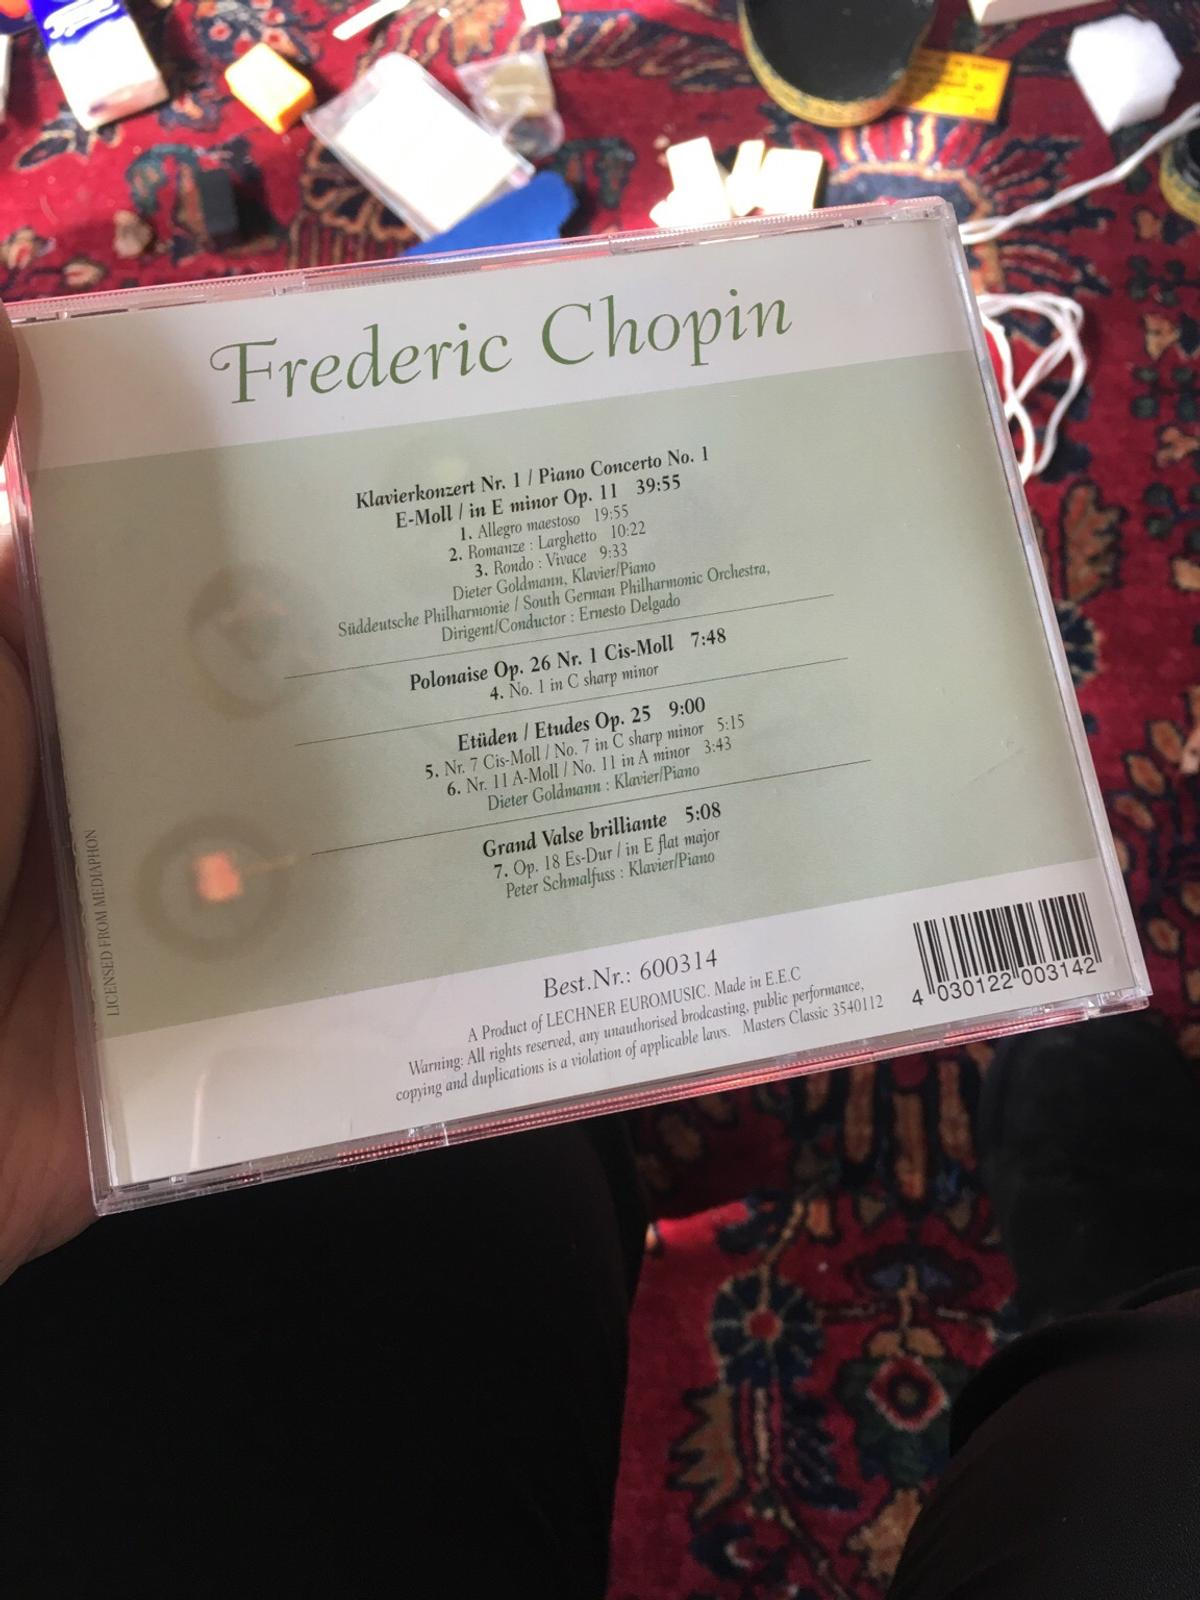 Frederic Chopin CD